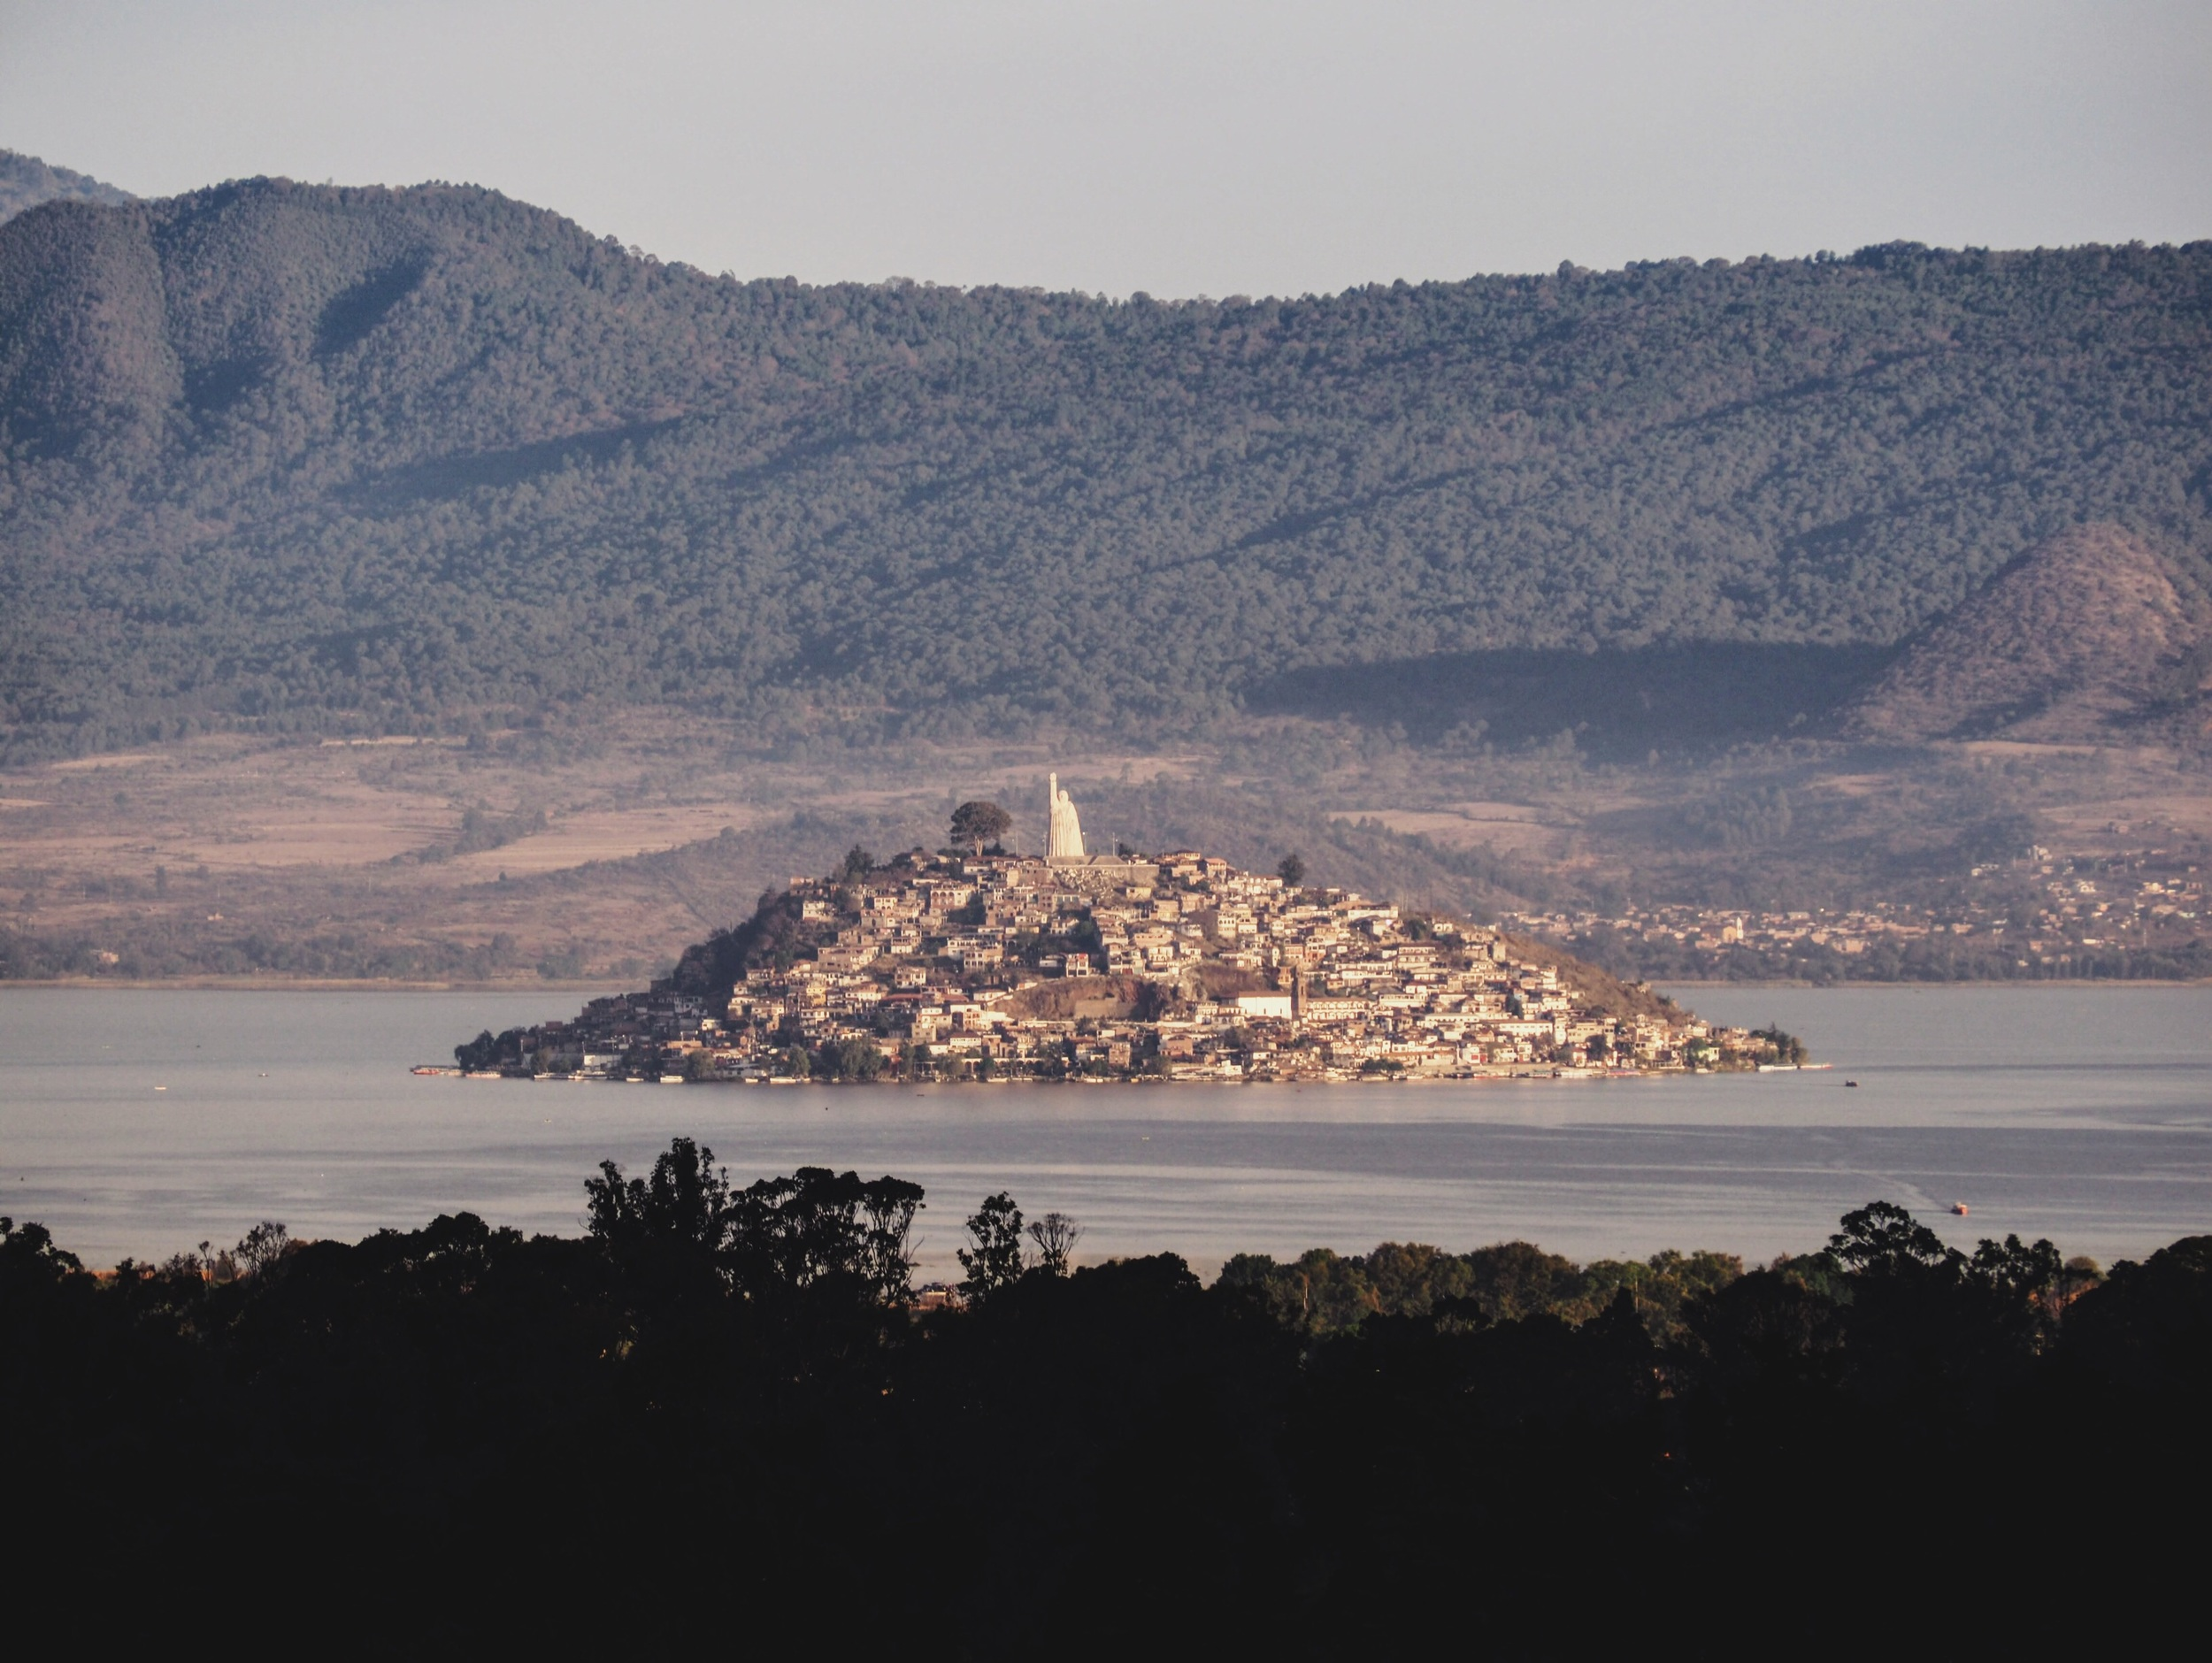 View of Isla de Janitzio from our adobe casita Pátzcuaro, with the giant statue of José María Morelos at the top